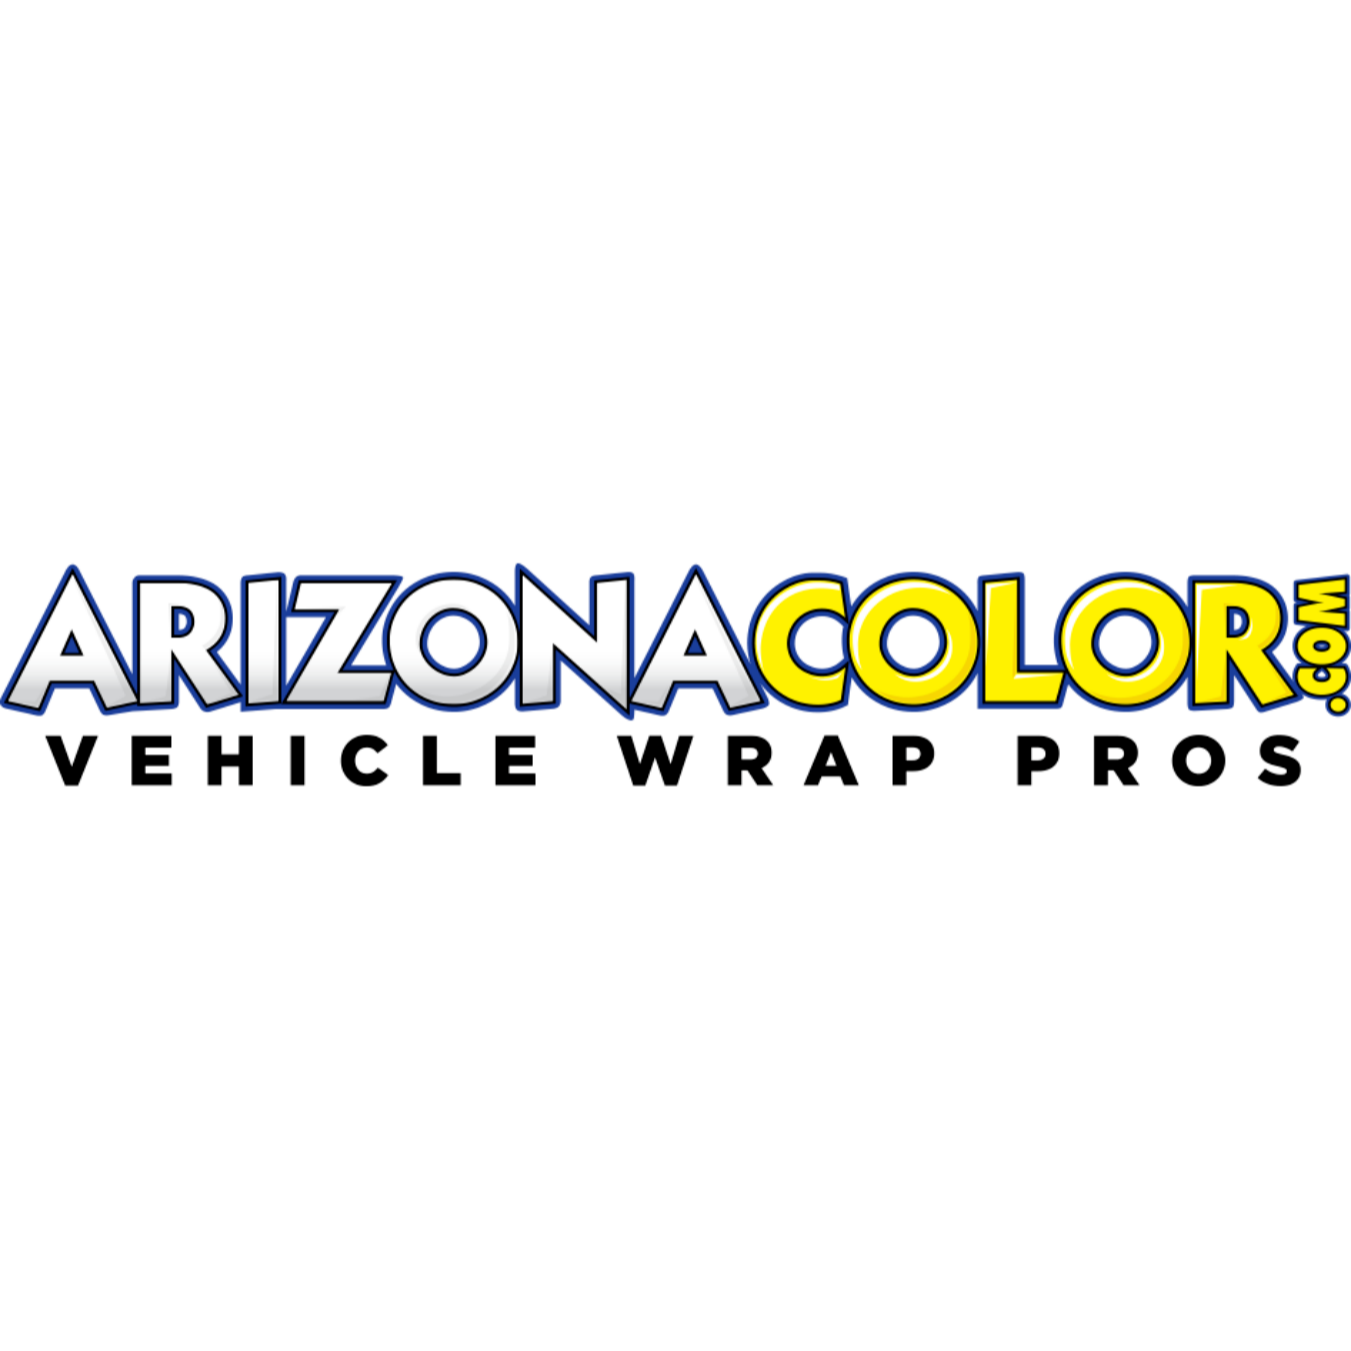 Arizona Color Vehicle Wrap Professionals, the Original Wrap Shop!